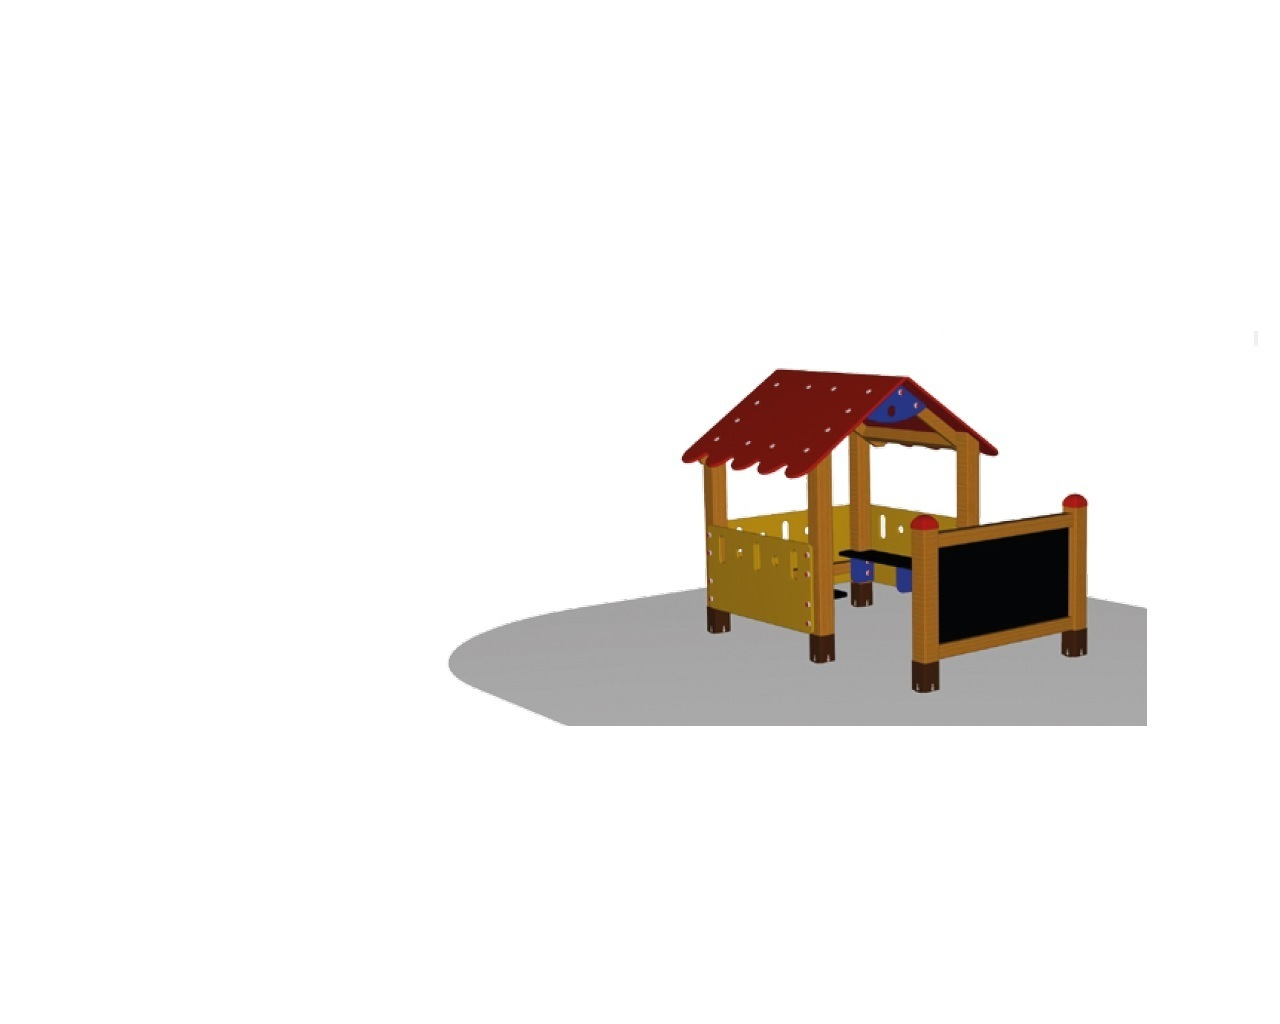 kita bonn outdoor spielanlage kleines spielhaus mit b nken tafel kids und kita. Black Bedroom Furniture Sets. Home Design Ideas